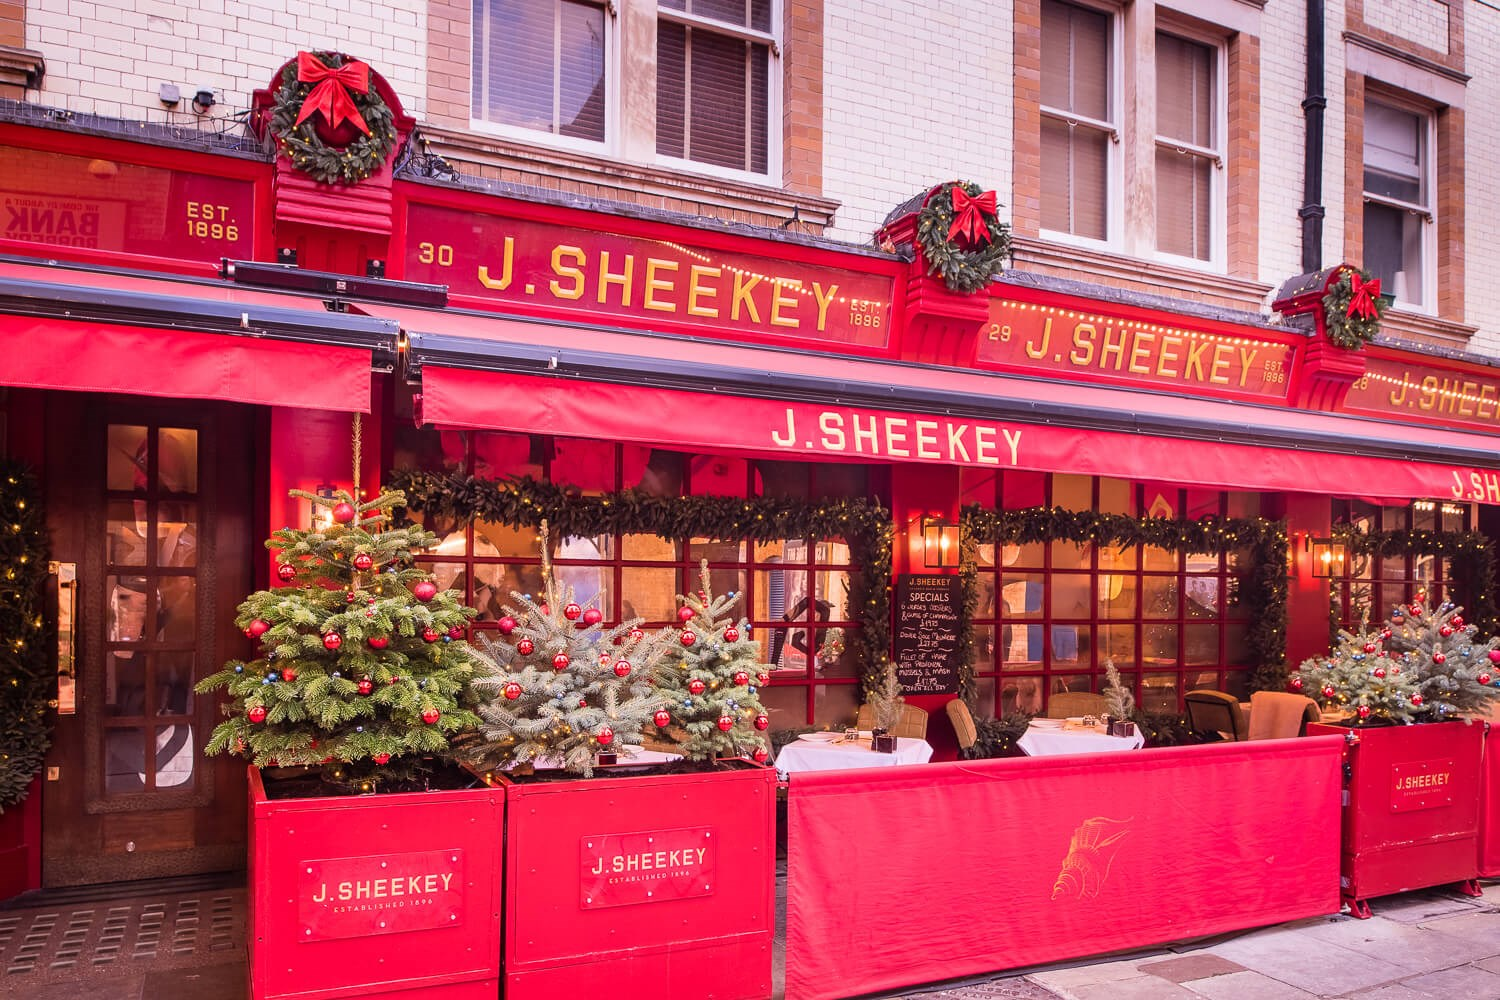 Terrace Dining in Leicester Square at J Sheekey, Fish and Shellfish Restaurant in London